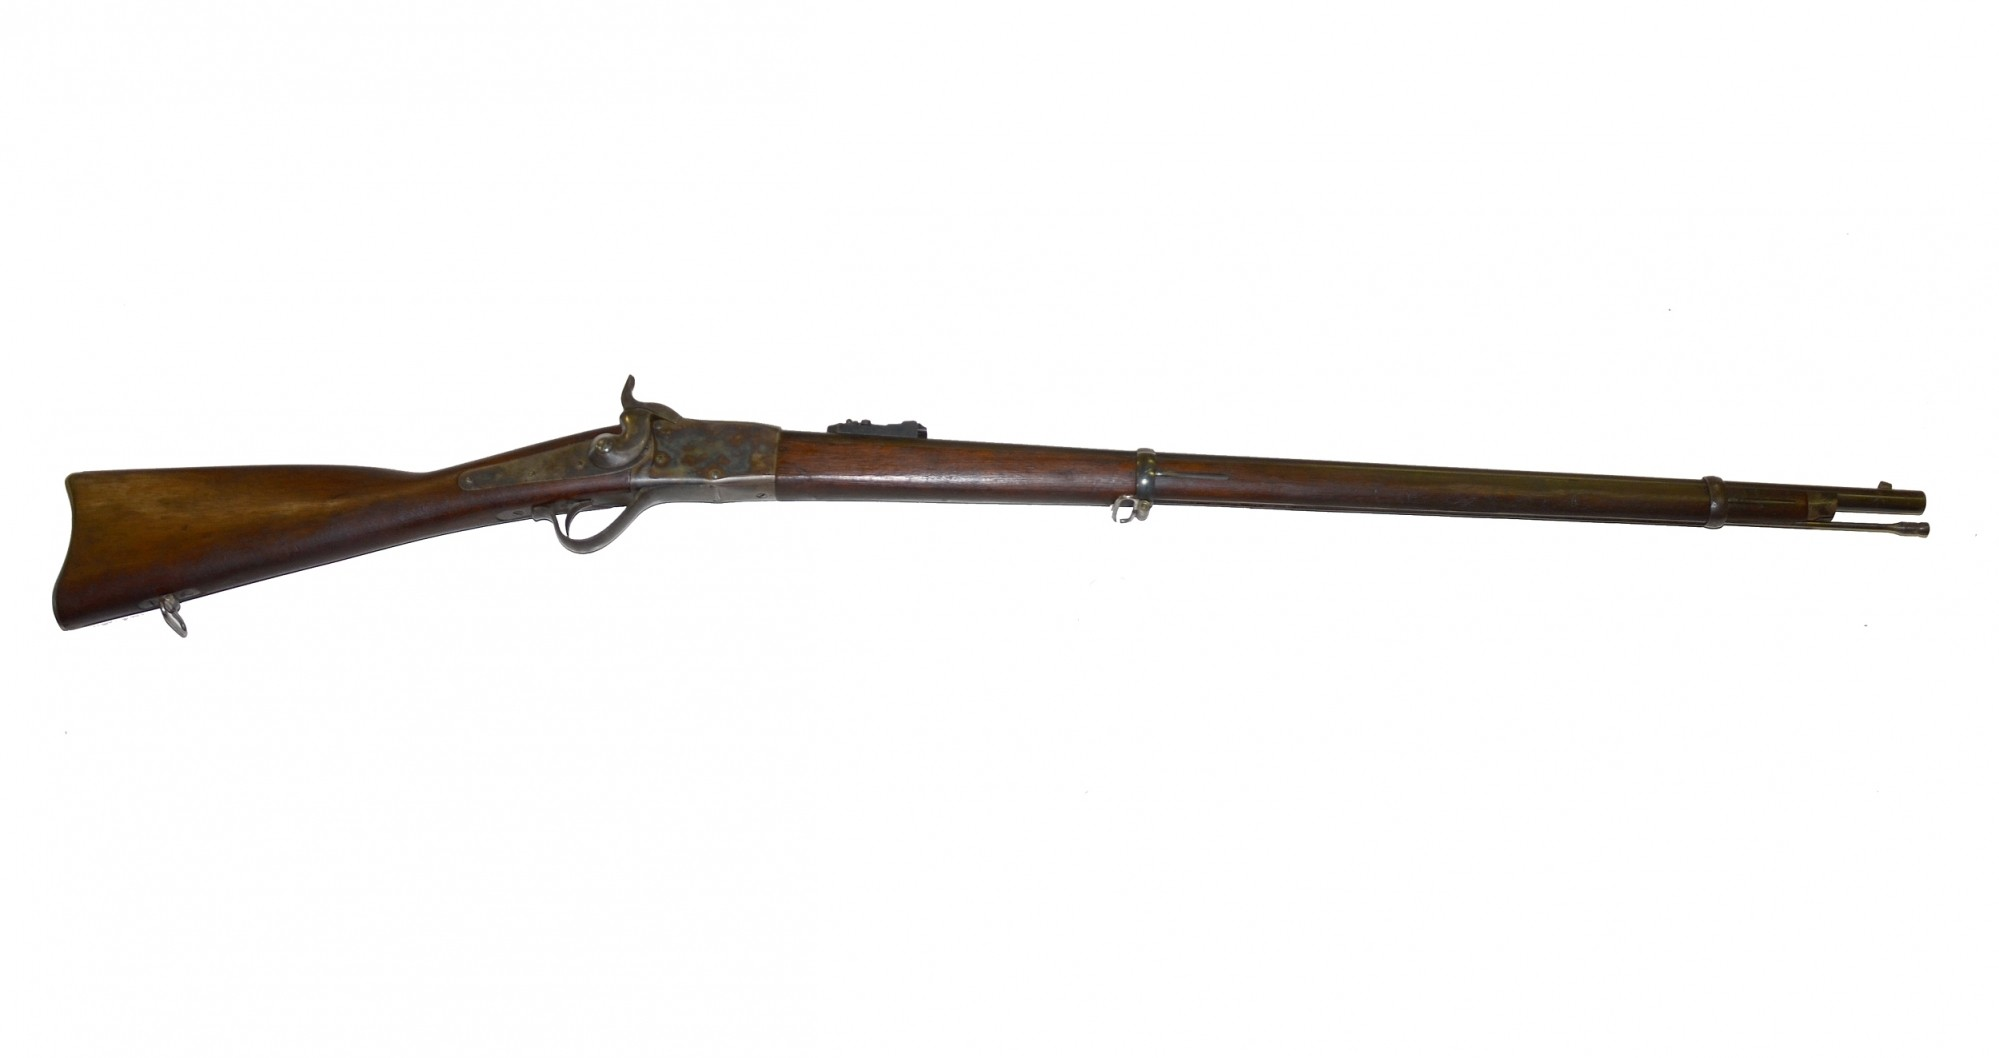 PEABODY RIFLE BY PROVIDENCE TOOL OF RHODE ISLAND